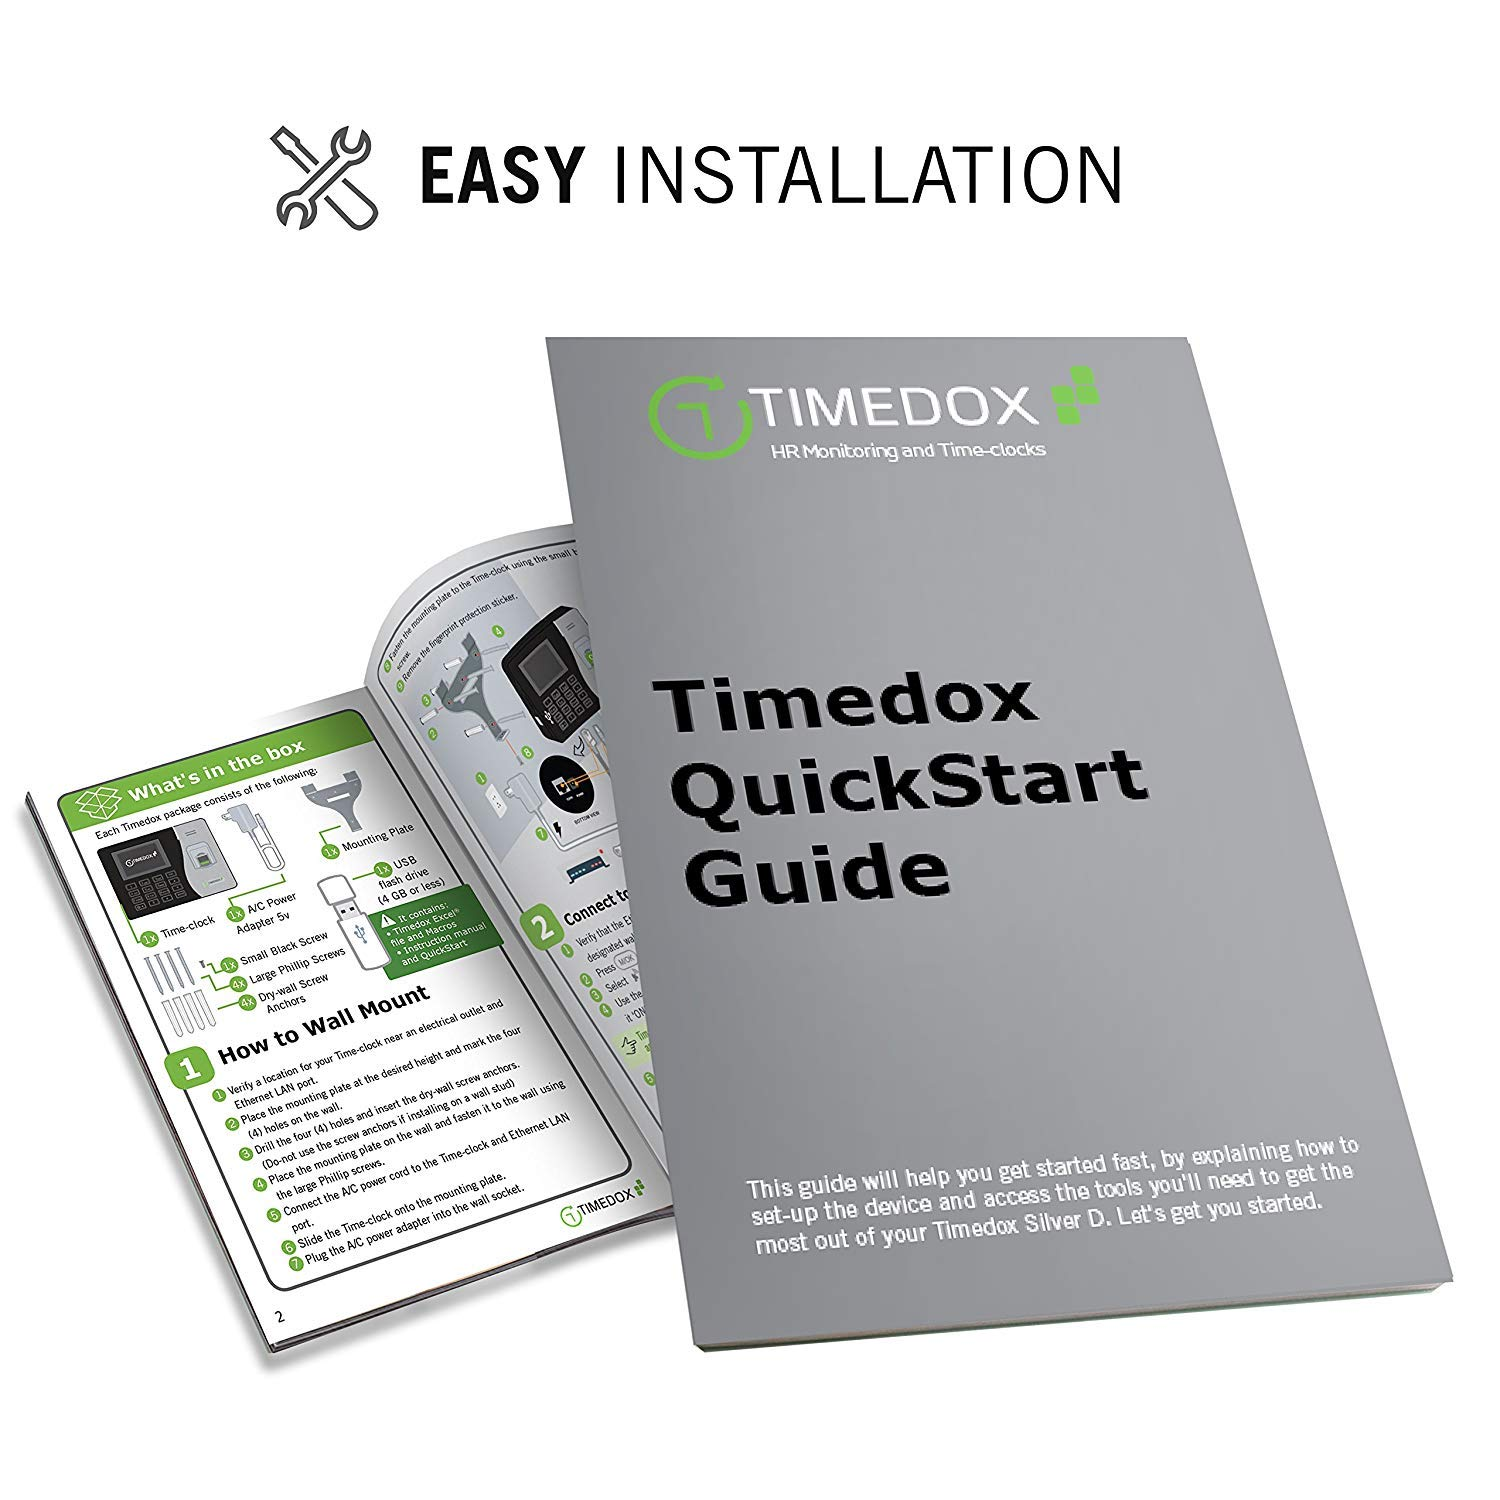 Include USB Flash Drive /& Dynamic Reports Creator Timedox Silver D Biometric Fingerprint Time Clock for Employees One Time Payment for The Software Required $0 Monthly Fee USA Support